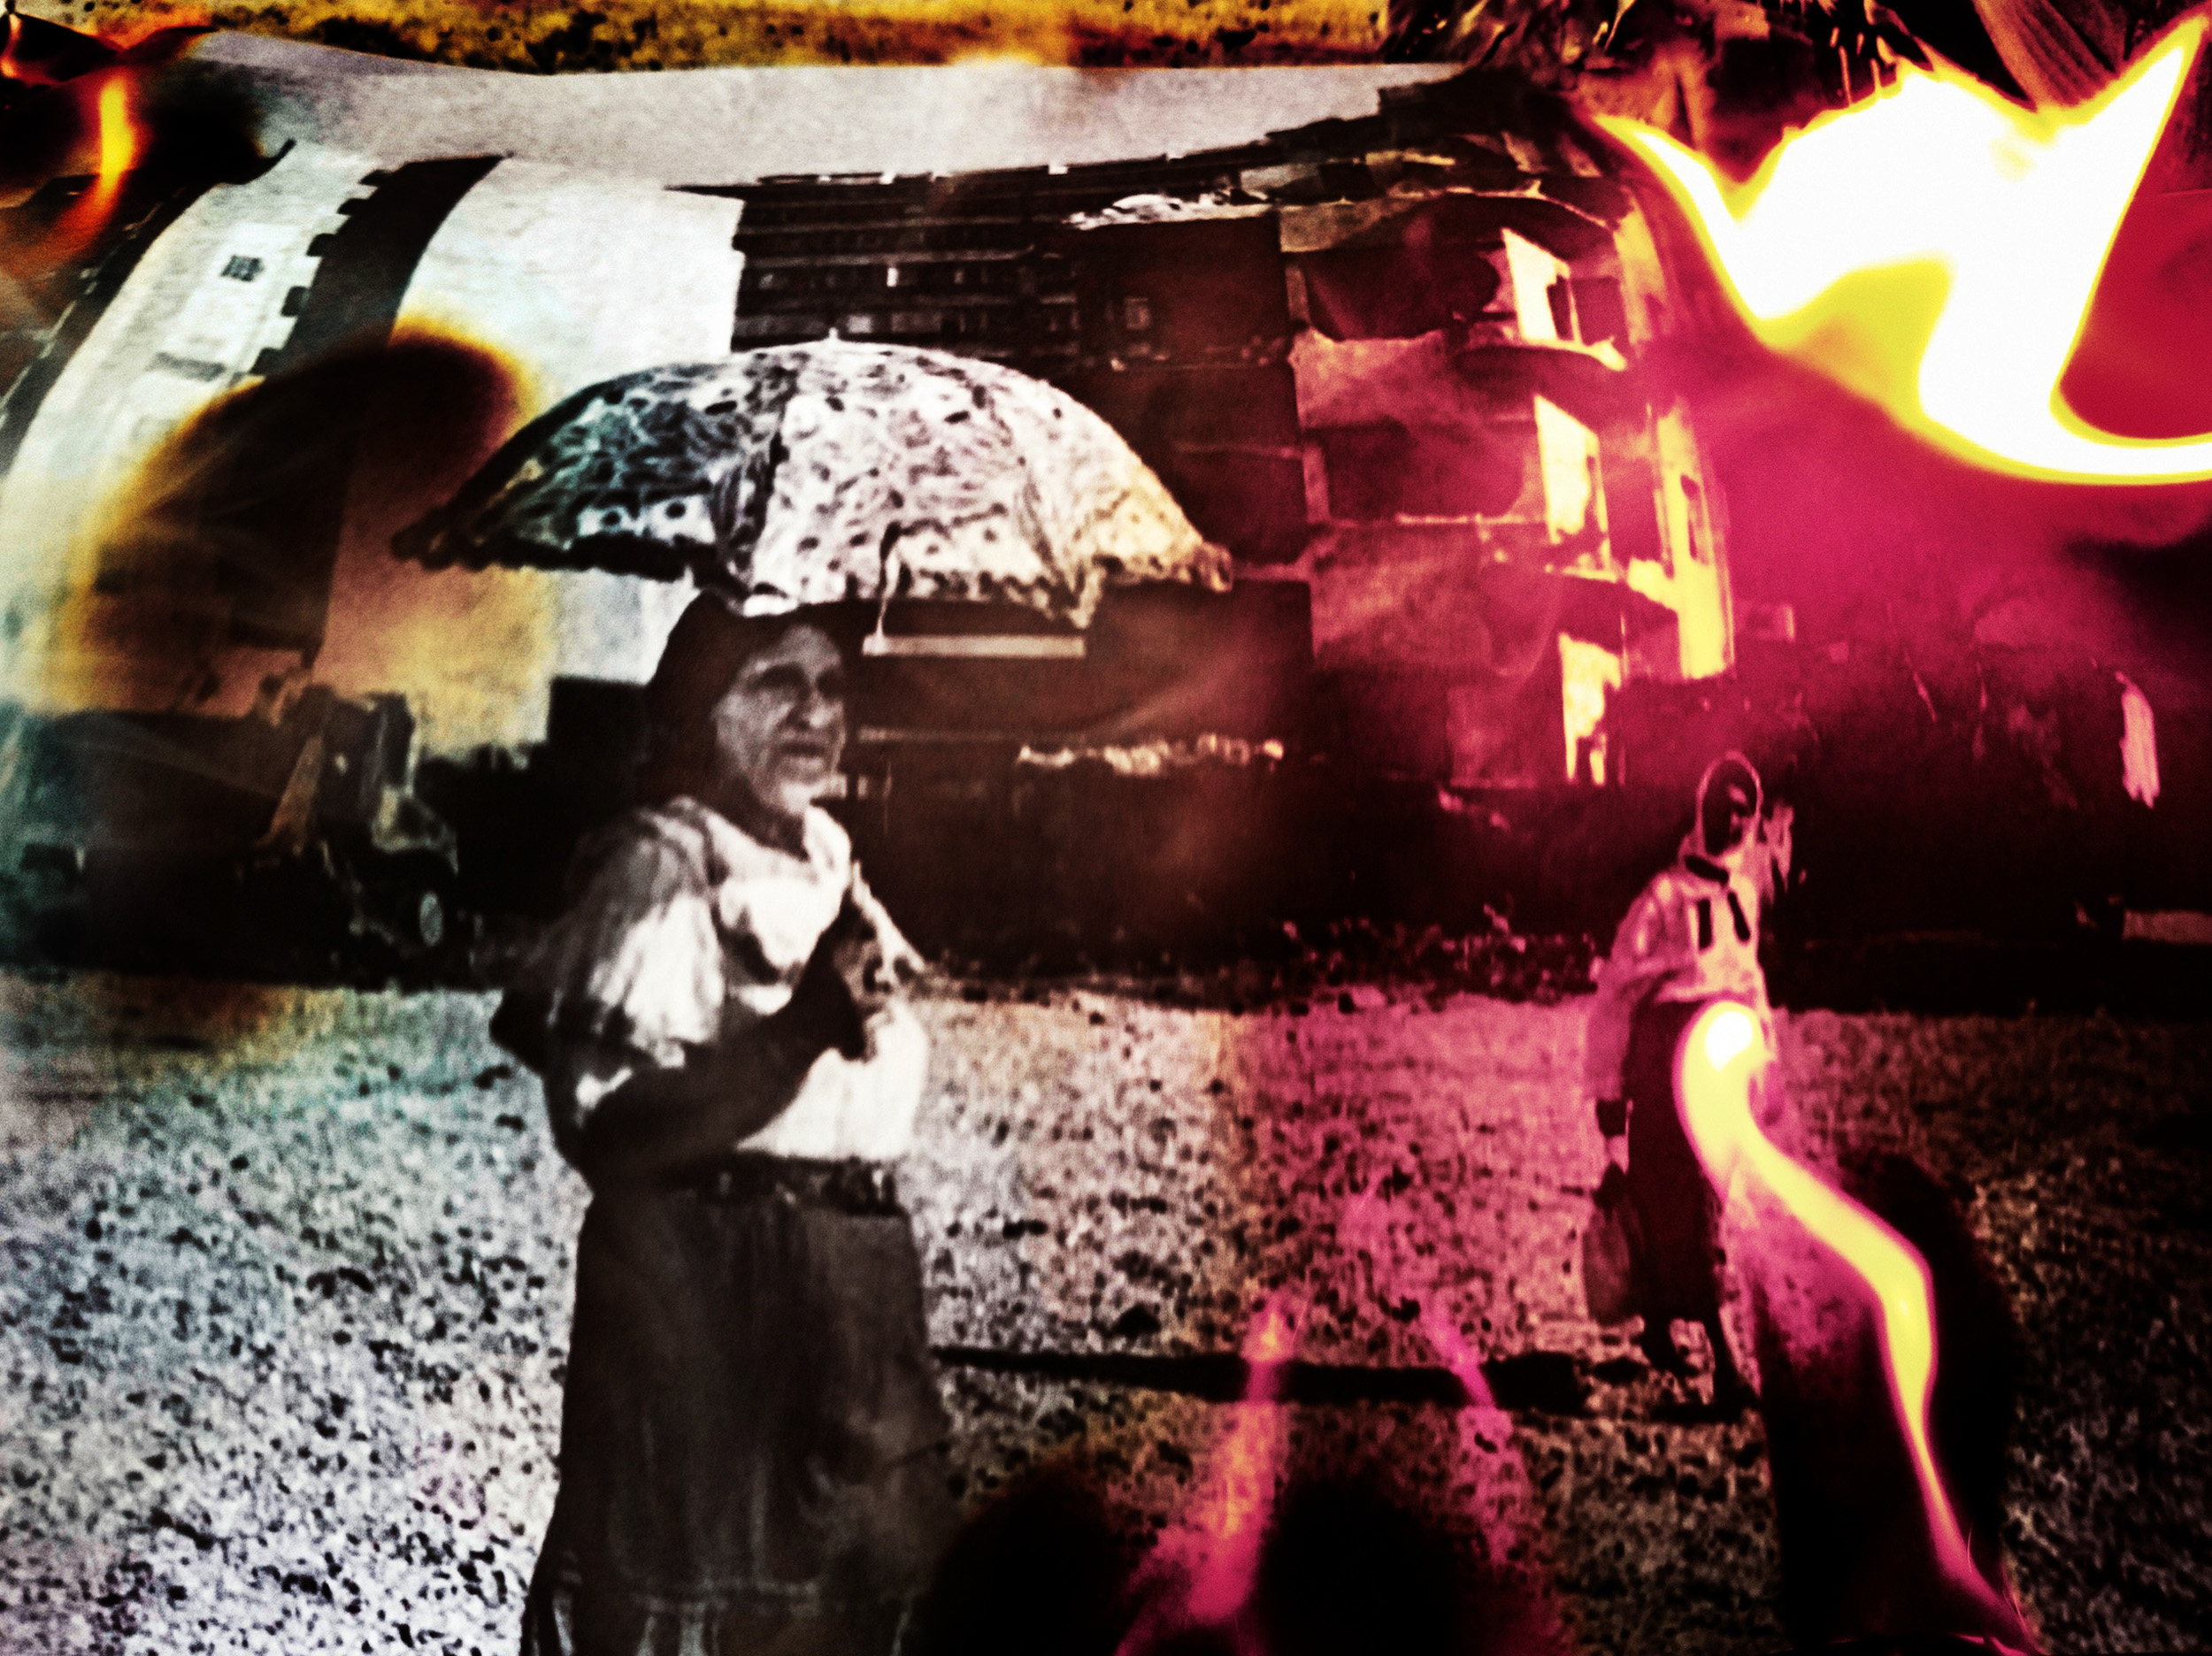 """Beirut image on fire VI. The original burning image was published in the book """"Beirut Mutations"""", page 116.  Zeitouni district, previously known as the red-light district, located at the proximity of Beirut port entrance, 1995."""